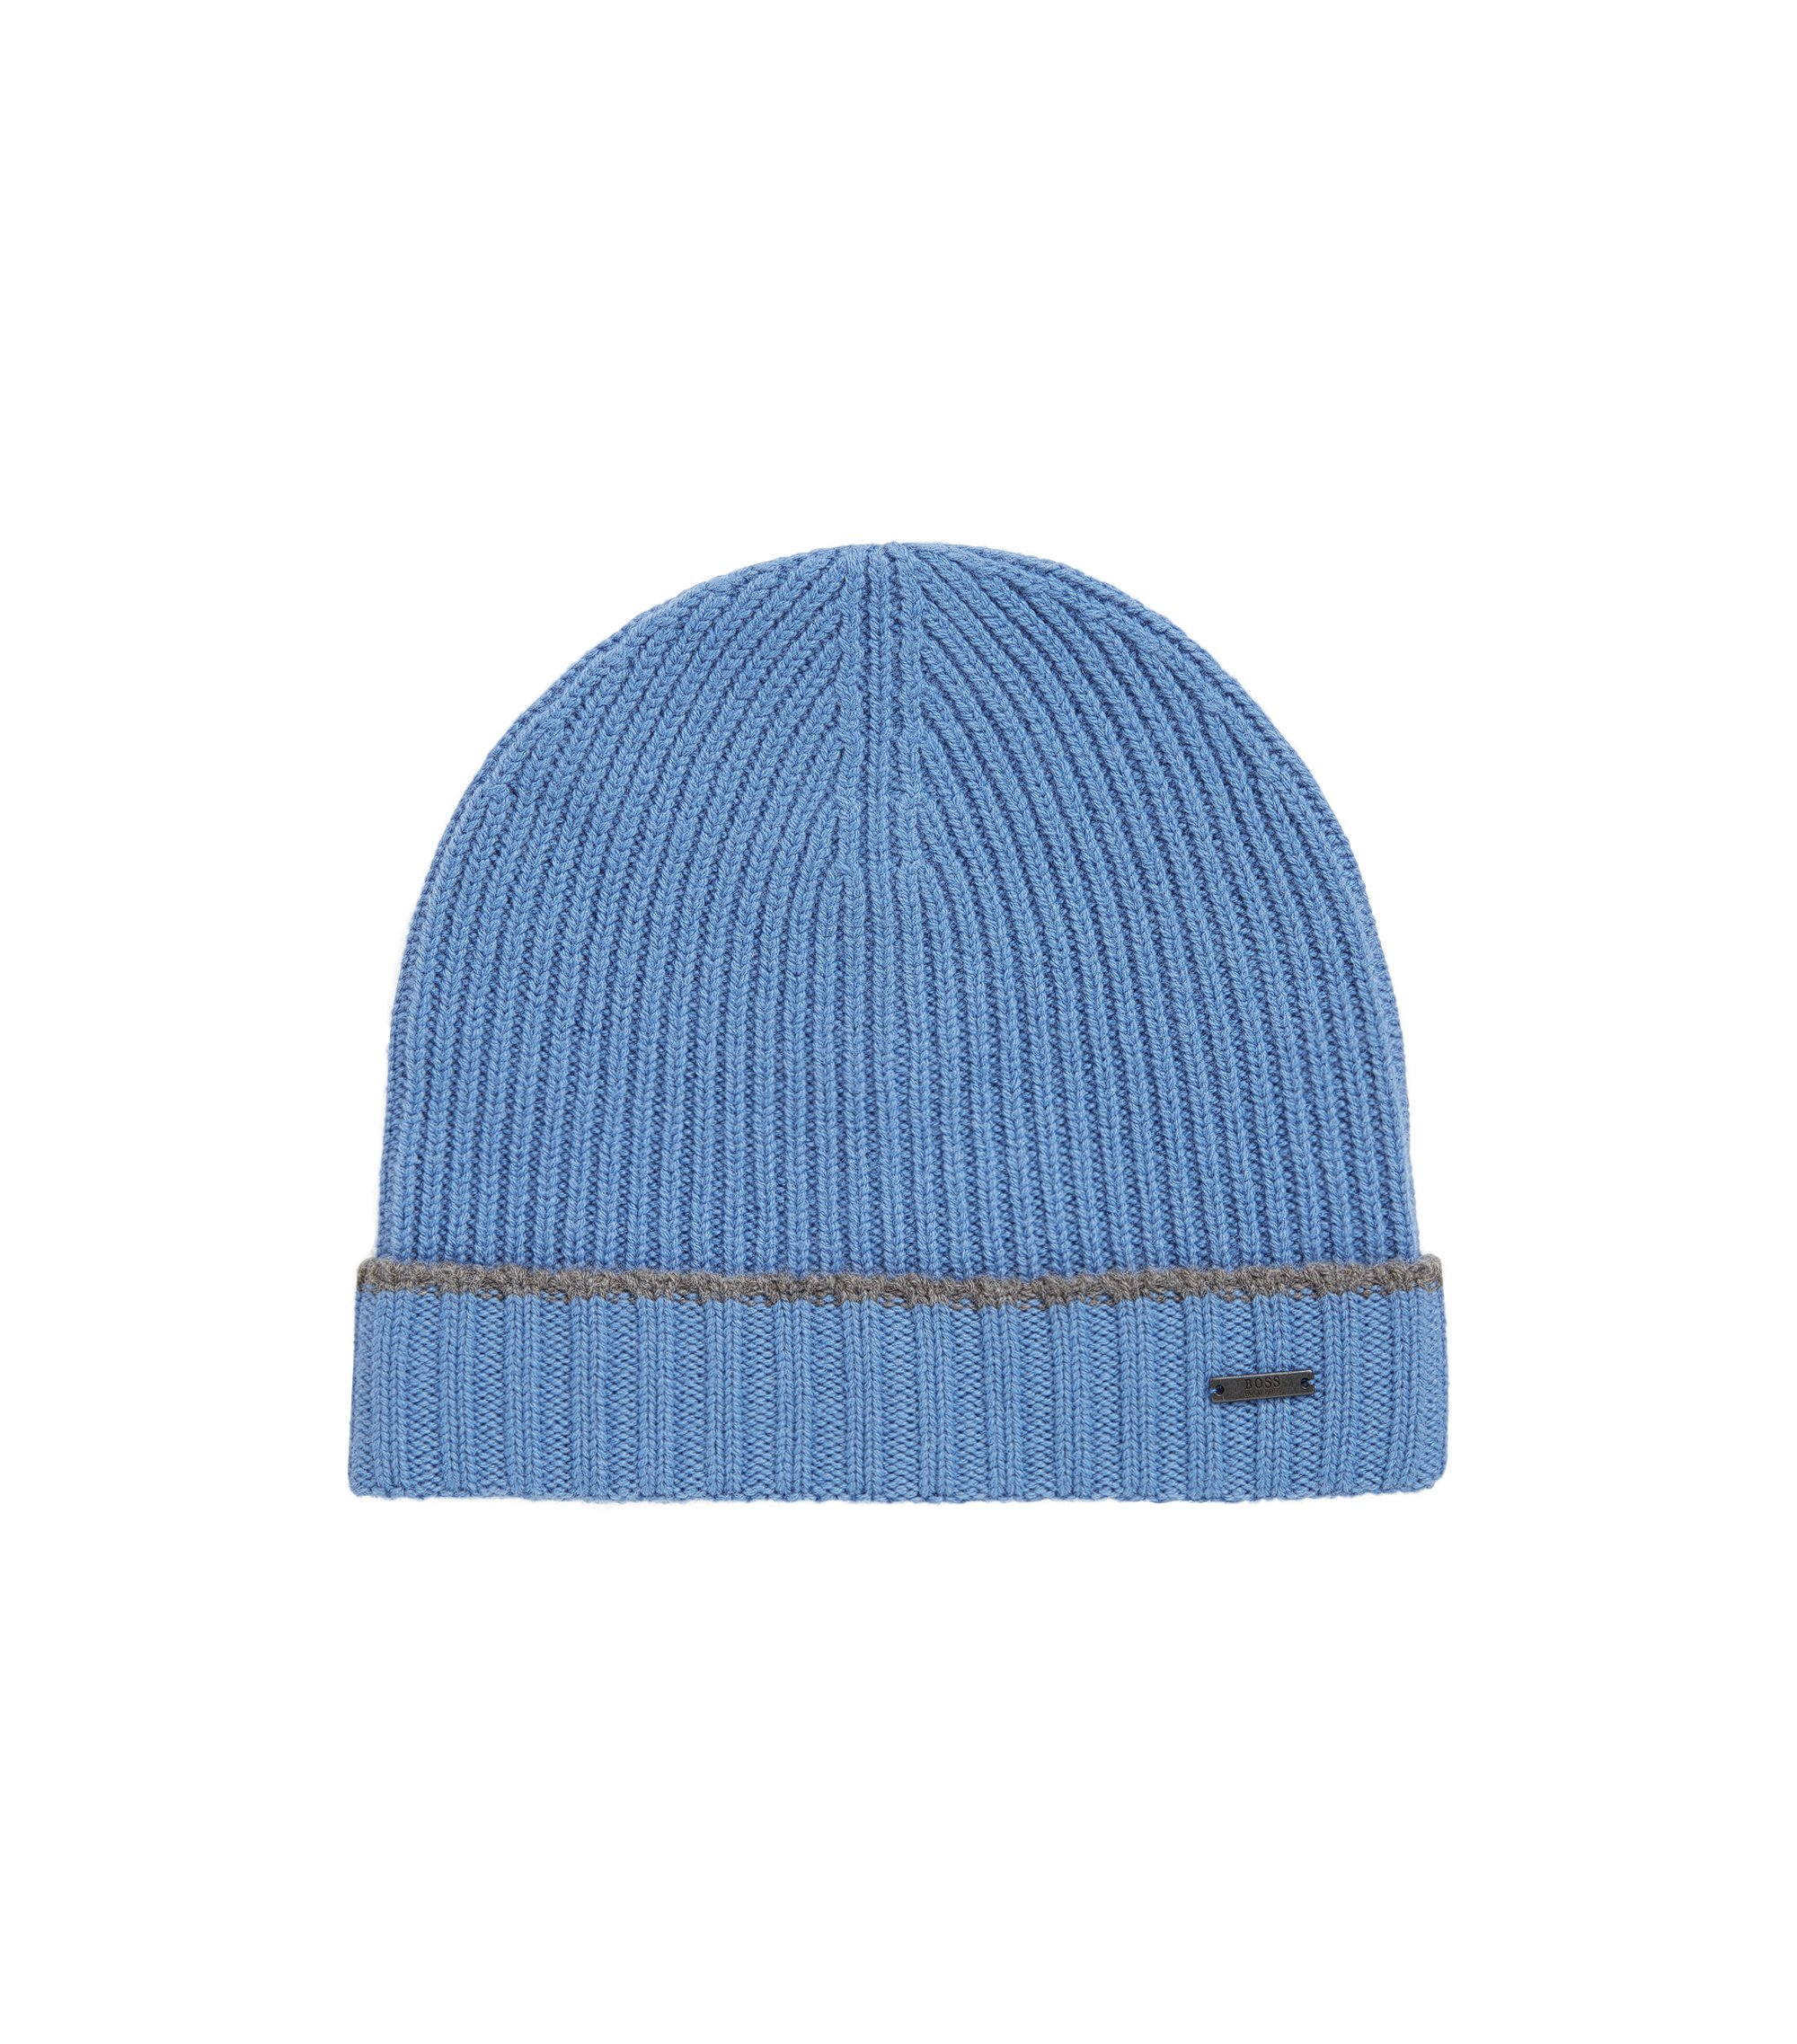 Knitted beanie hat in virgin wool, Blue